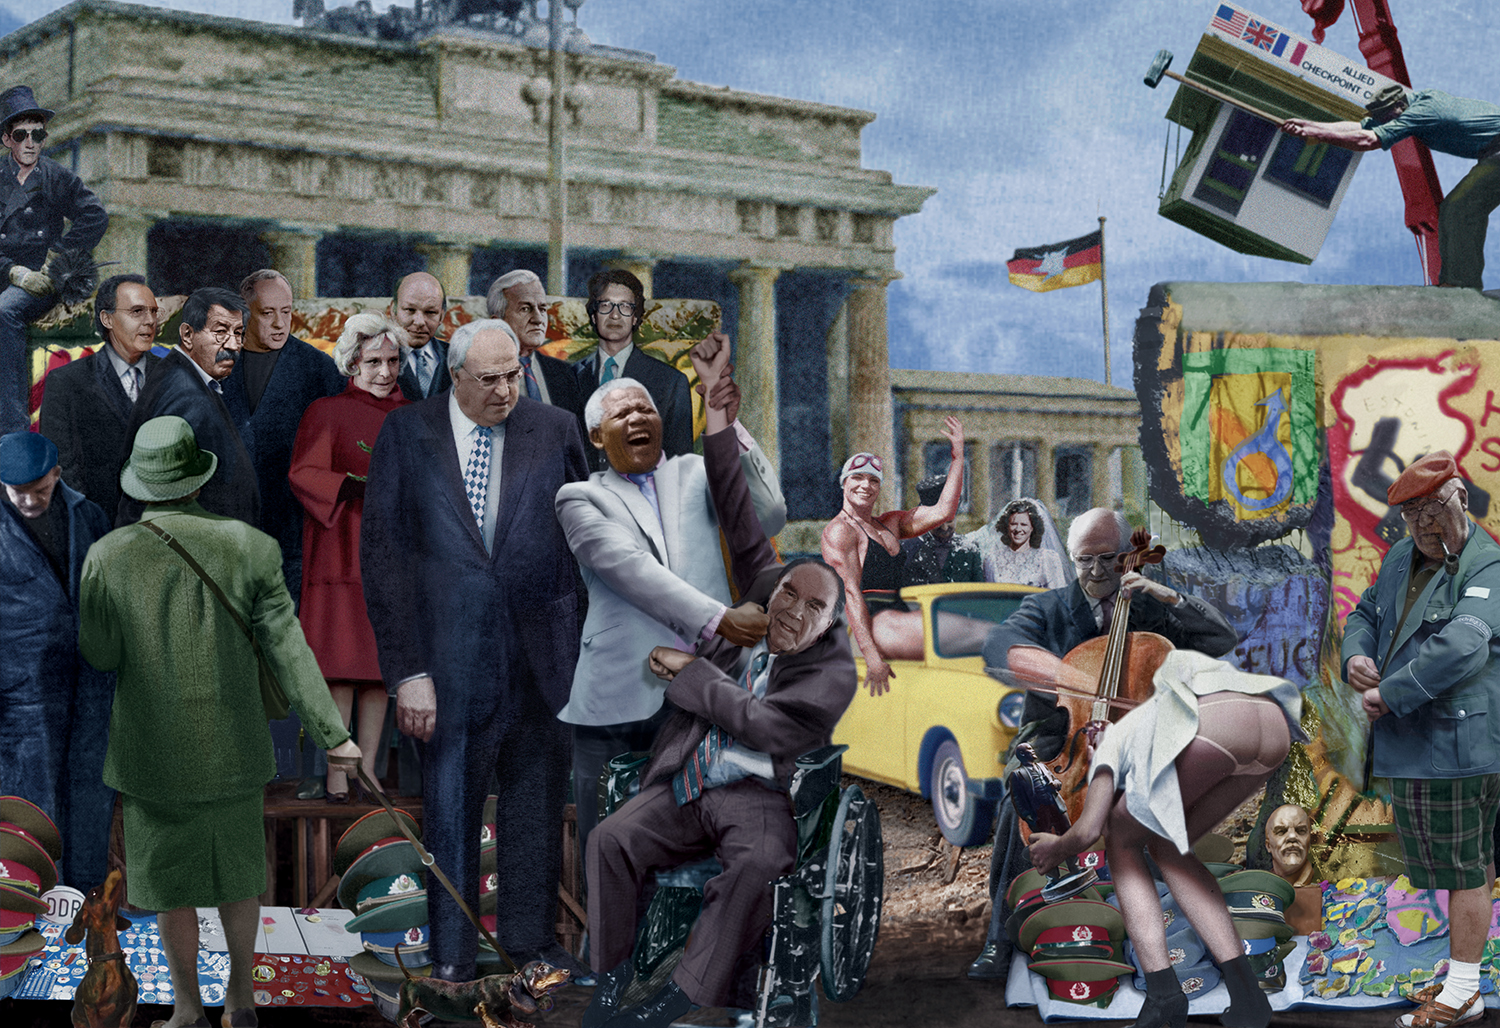 "Nelson Mandela at the Berlin Wall, holding the arm of legendary German boxing champion Max Schmeling. The two men are surrounded by the great German political figures and artists Franz Beckenbauer, Gunter Grass, Peter Zadek, Leni Riefenstahl, Walter Momper, Helmut Kohl, Richard von Weizsacker and Wim Wenders, with Russian cellist Mstislav Rostropovitch depicted on the far right.  ""The Warriors"", from  Twentieth Century Dreams , 1995-1999."